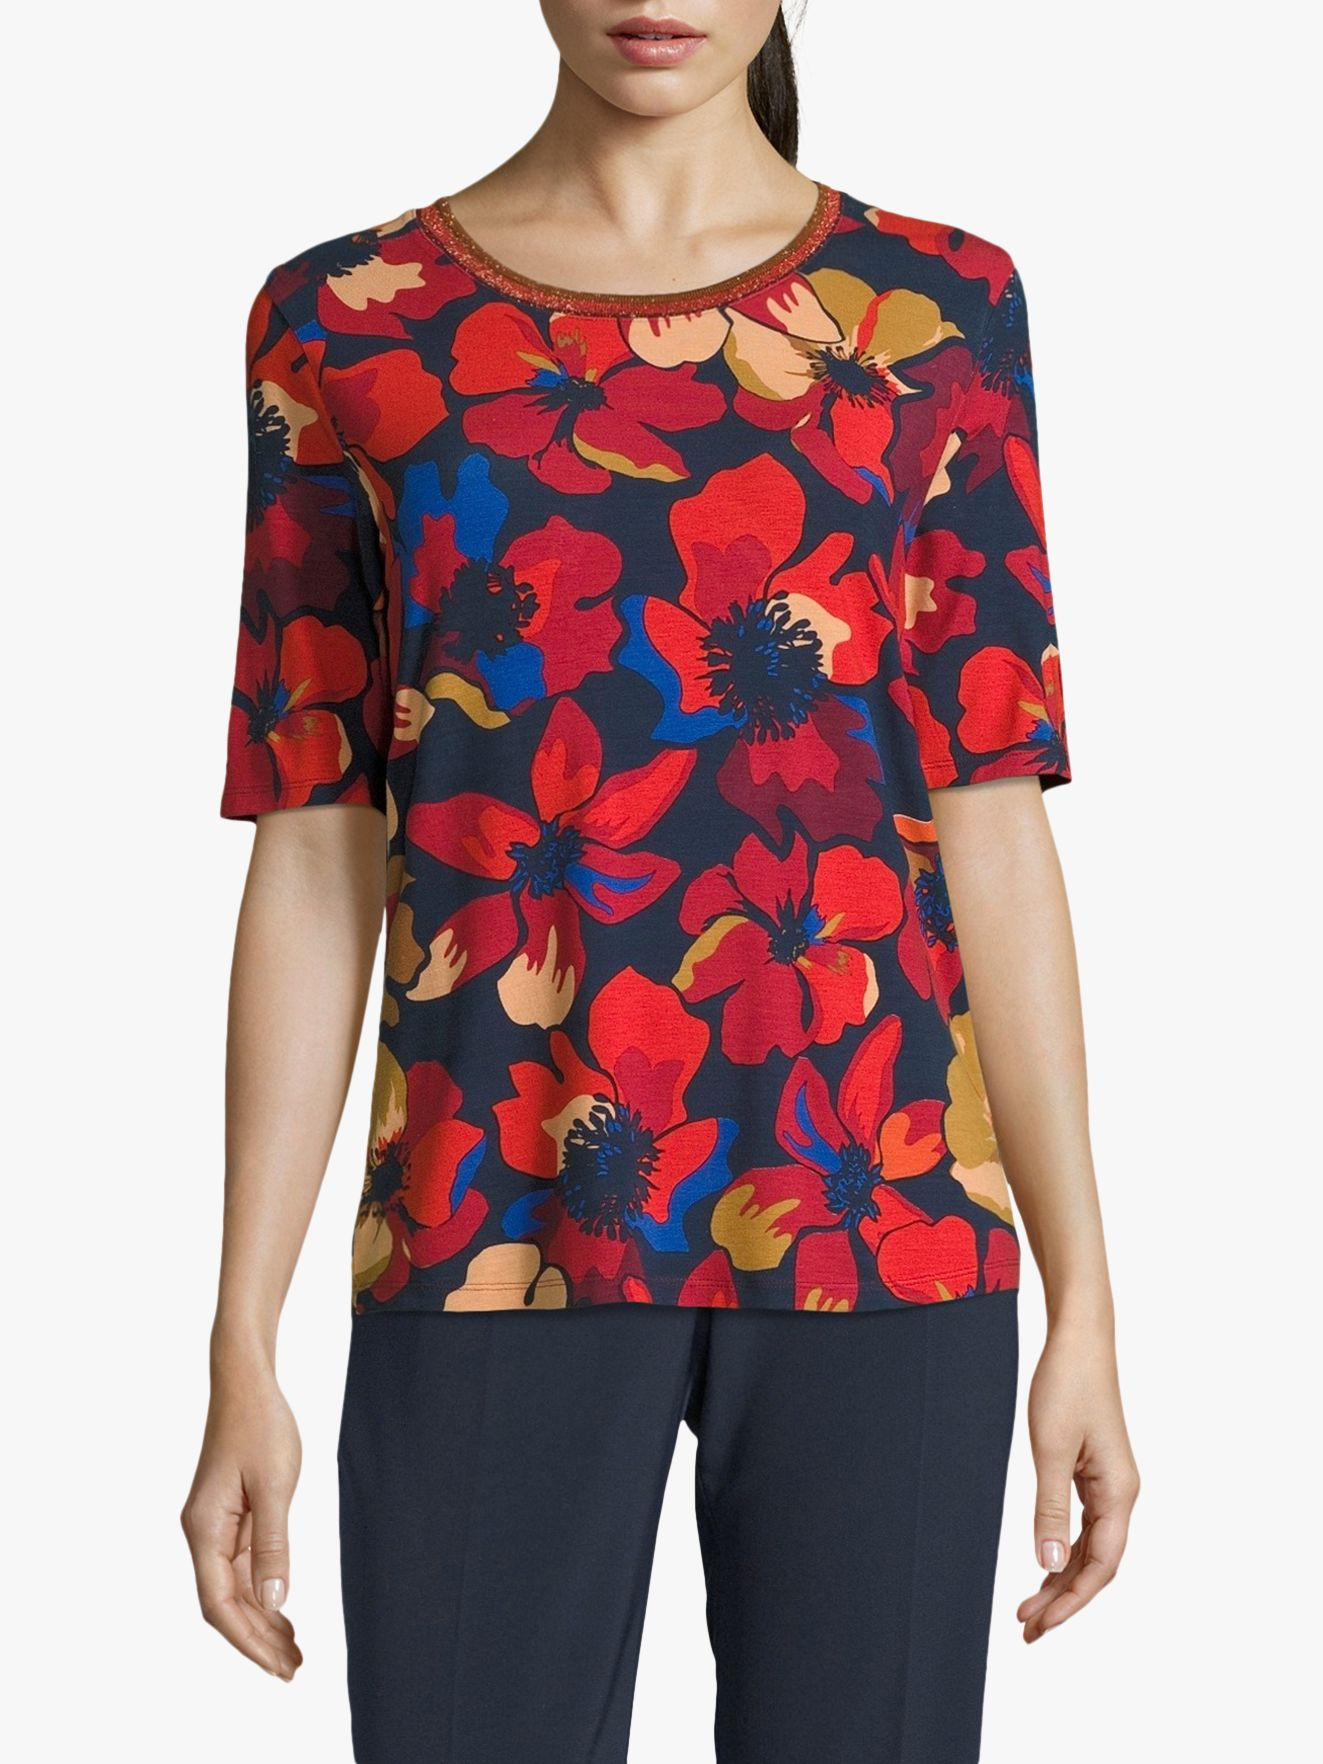 Betty Barclay Betty Barclay Floral Print Top, Red/Dark Blue